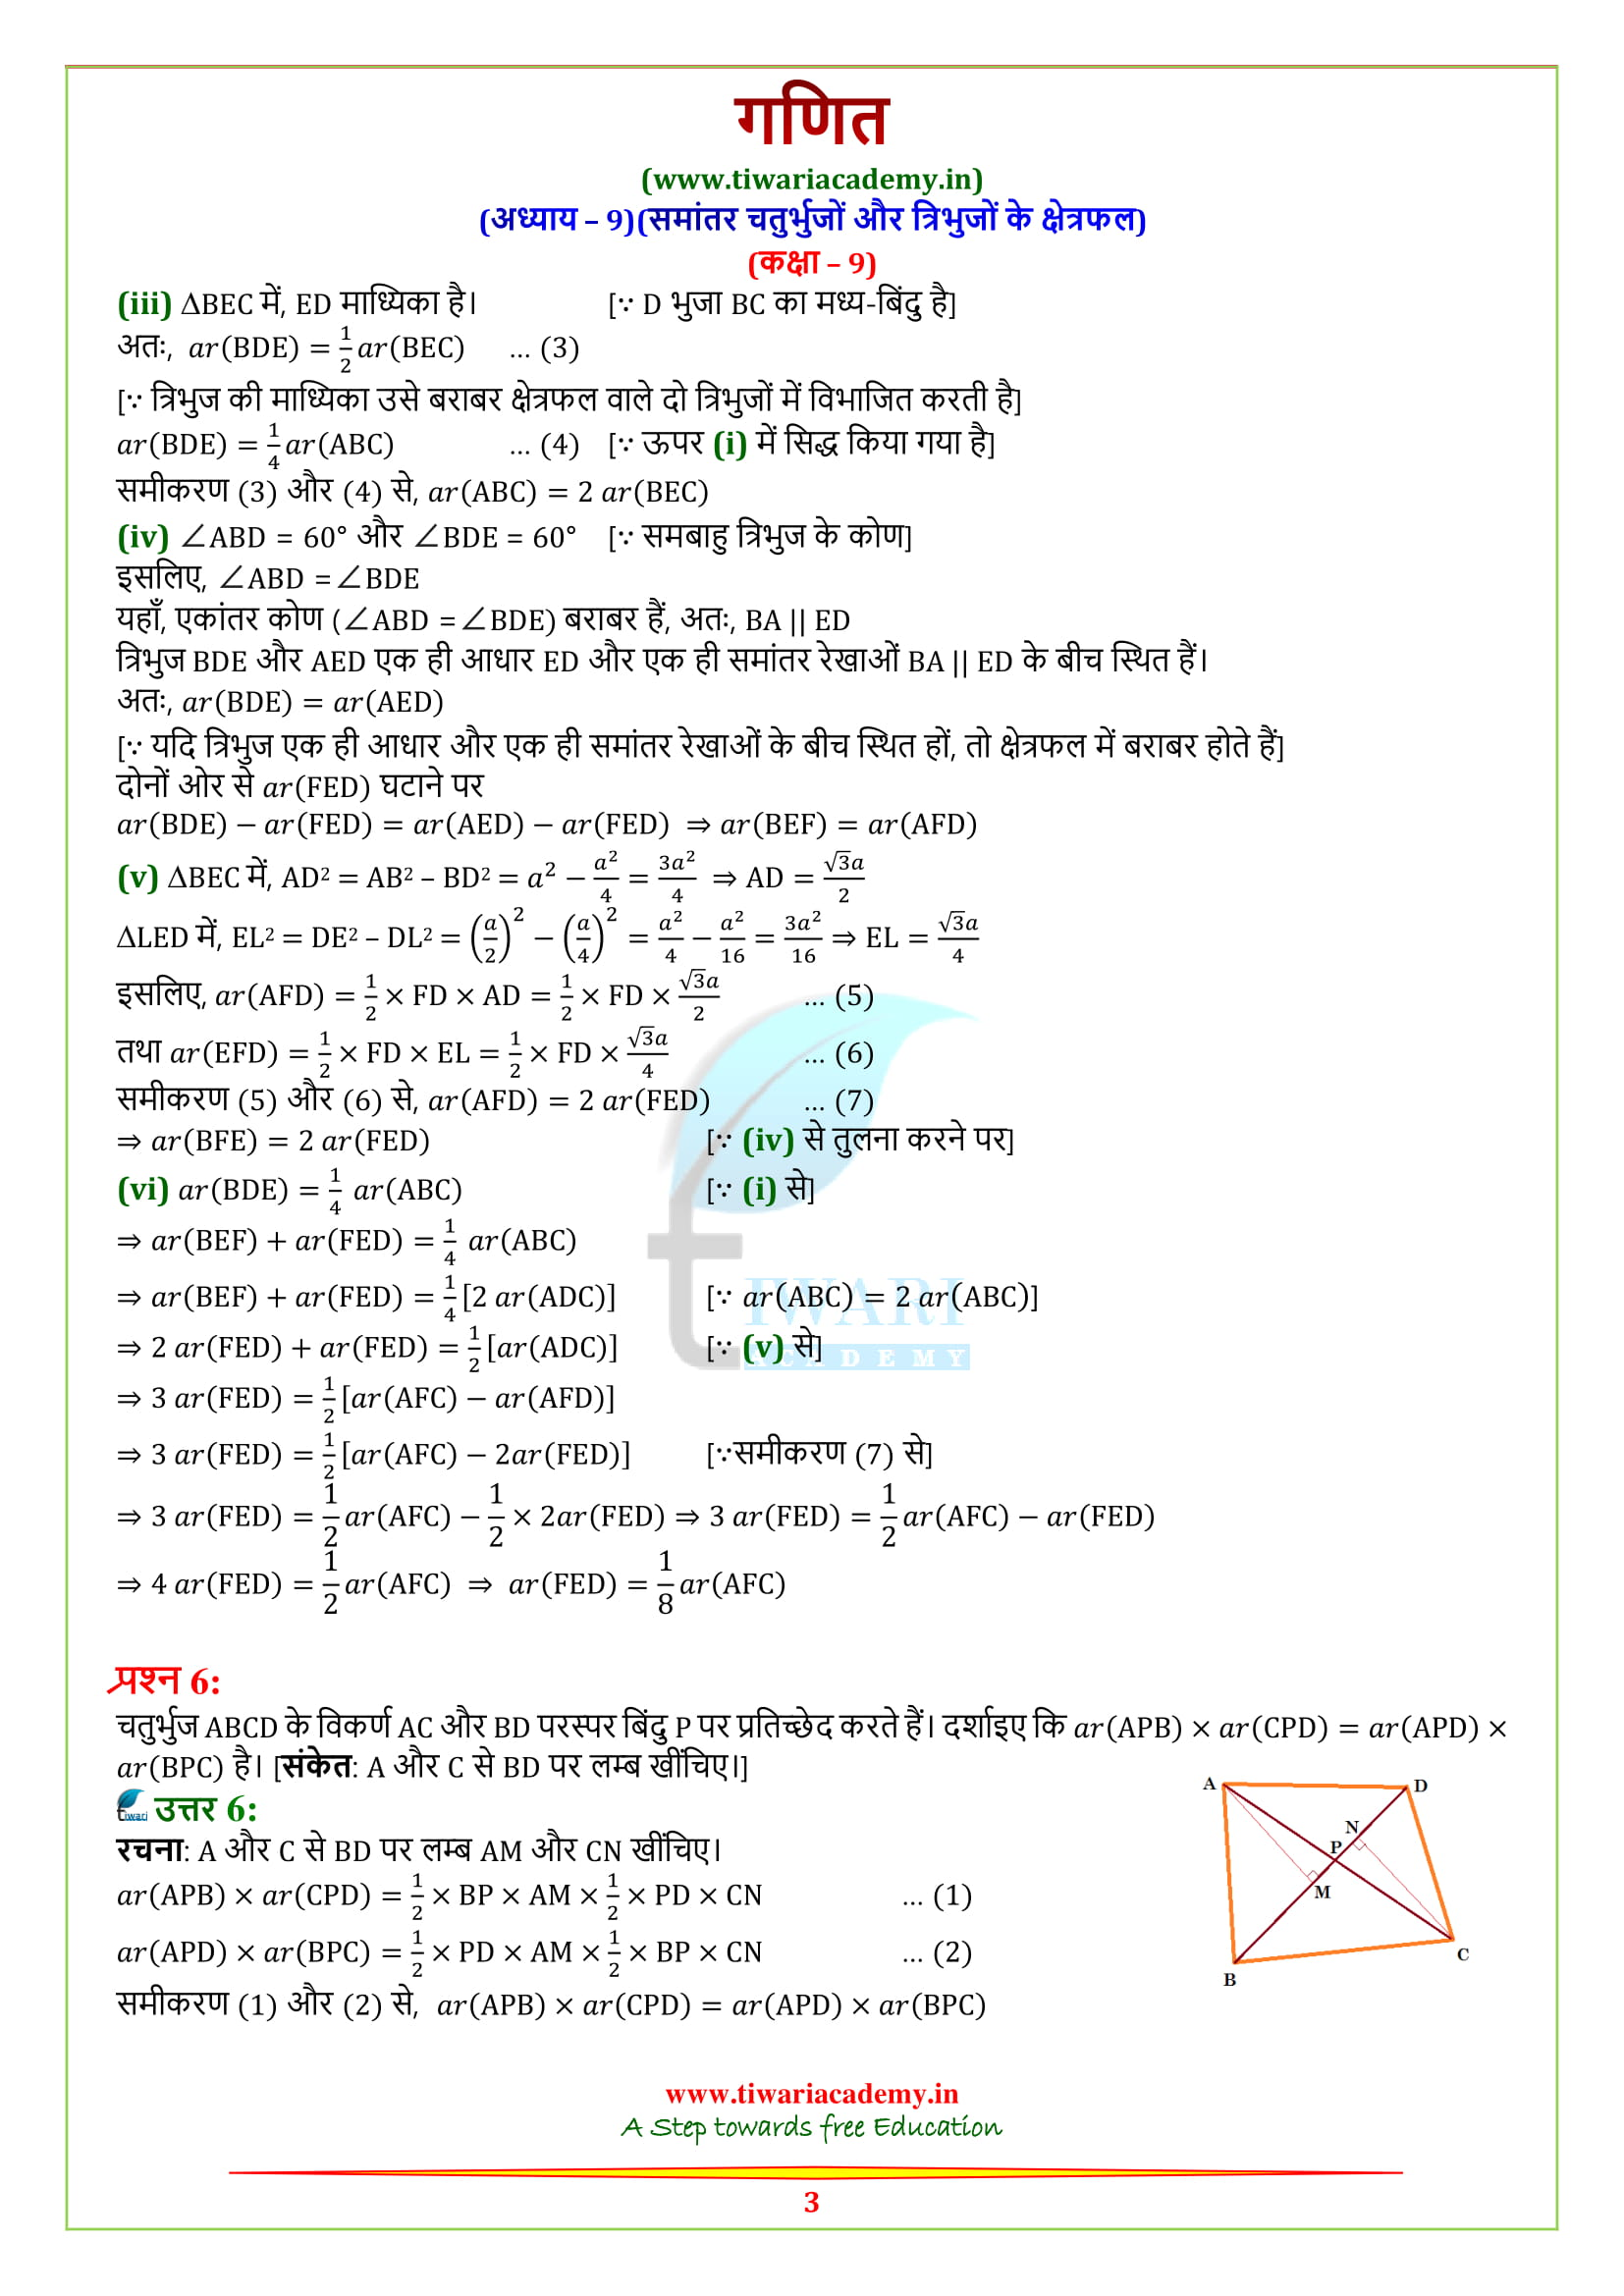 NCERT Solutions for class 9 Maths exercise 9.4 all answers guide